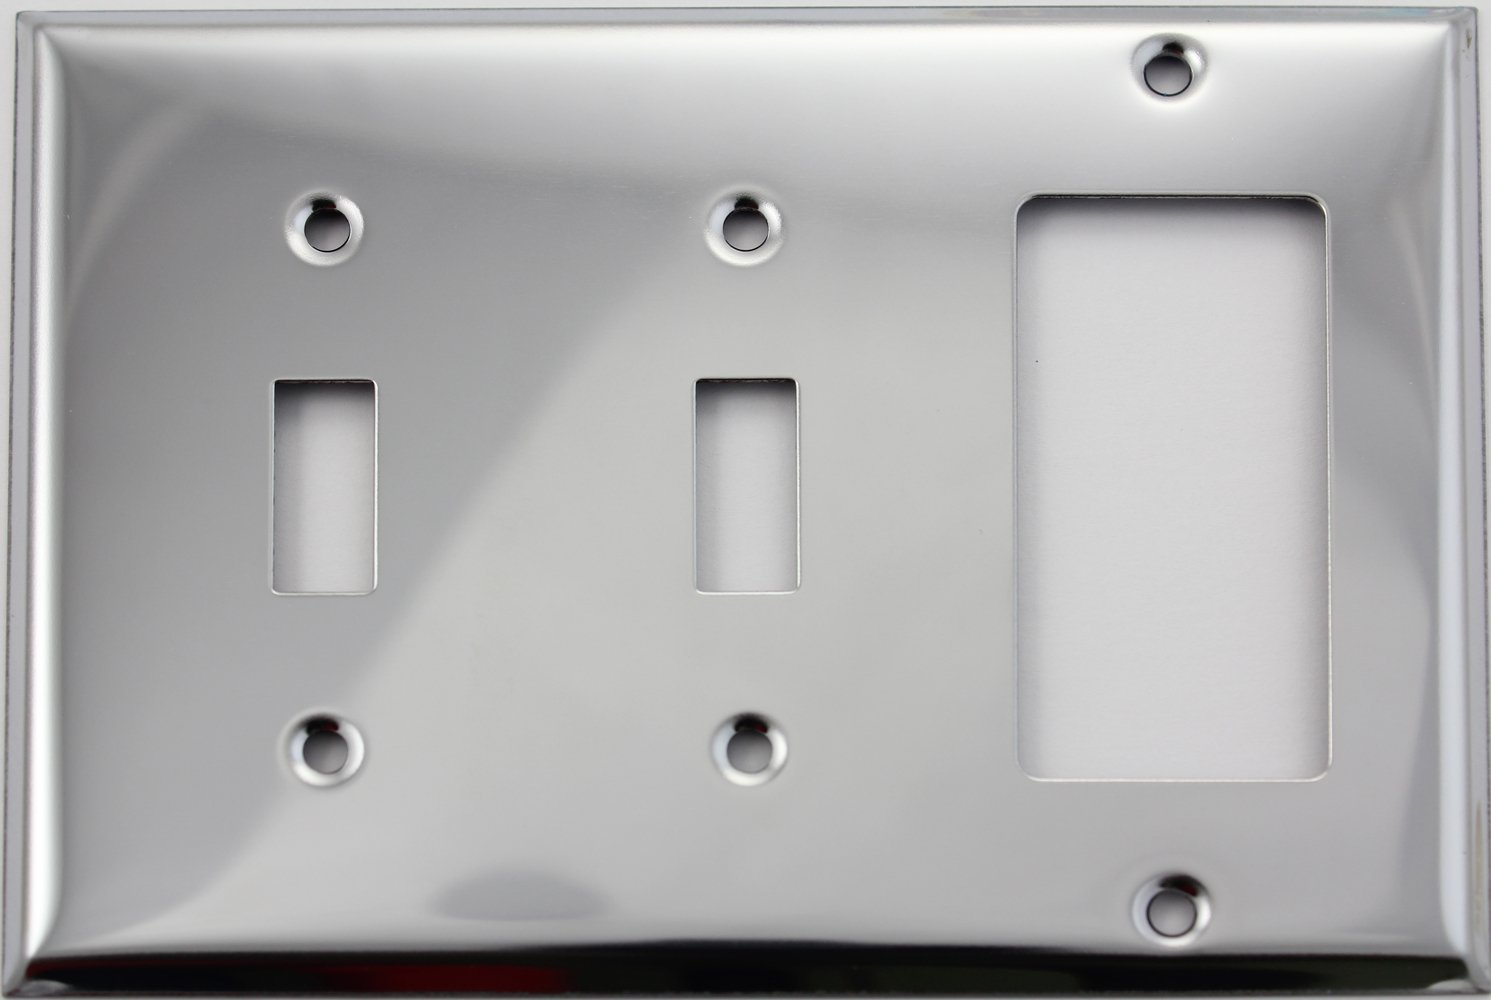 Stainless Steel 3 Gang Wall Plate - 2 Toggle 1 GFI/Rocker